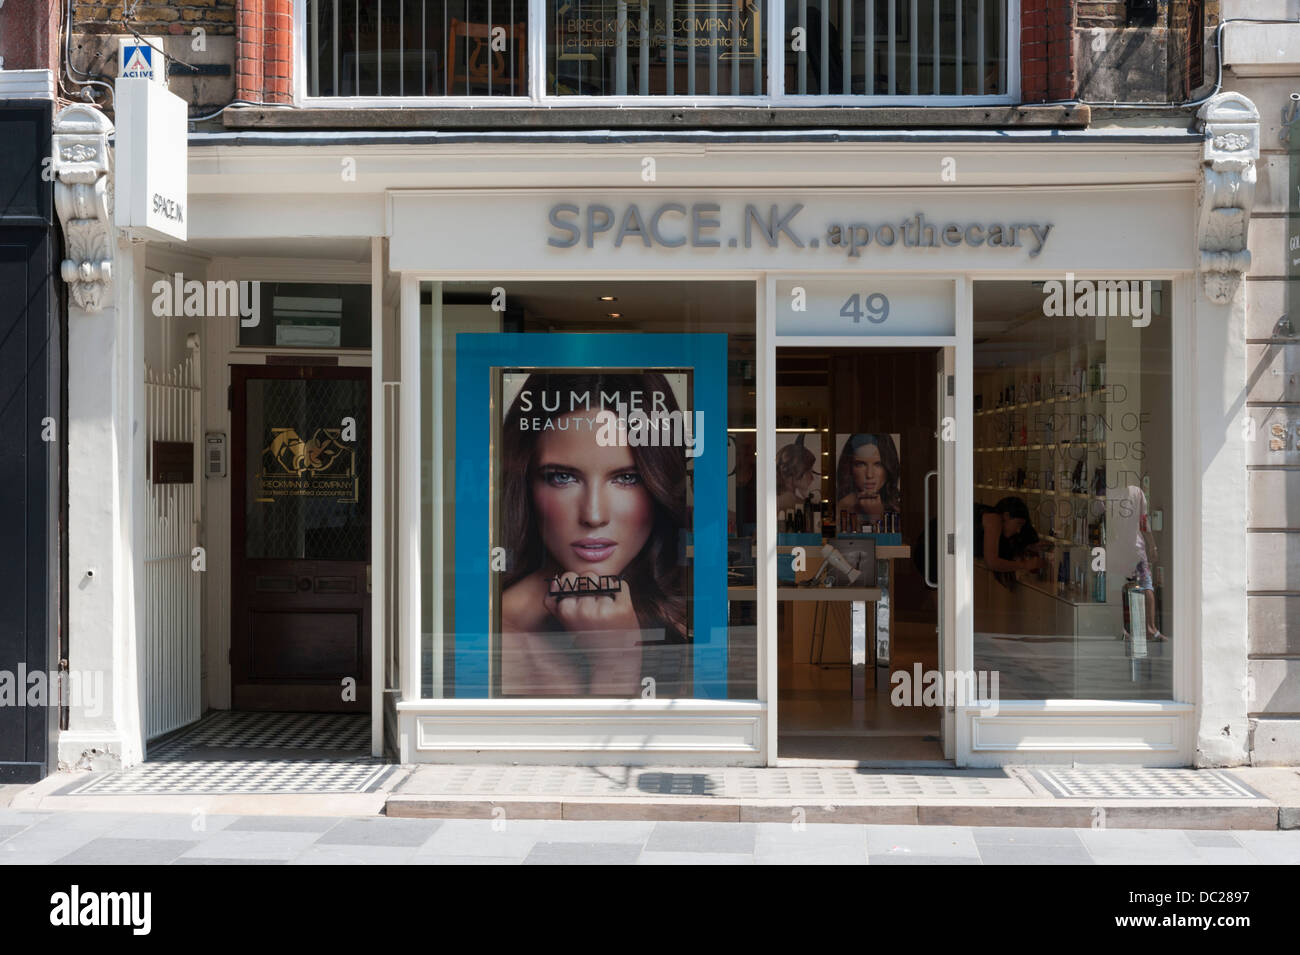 Space,NK apothecary shop South Molton Street London UK - Stock Image